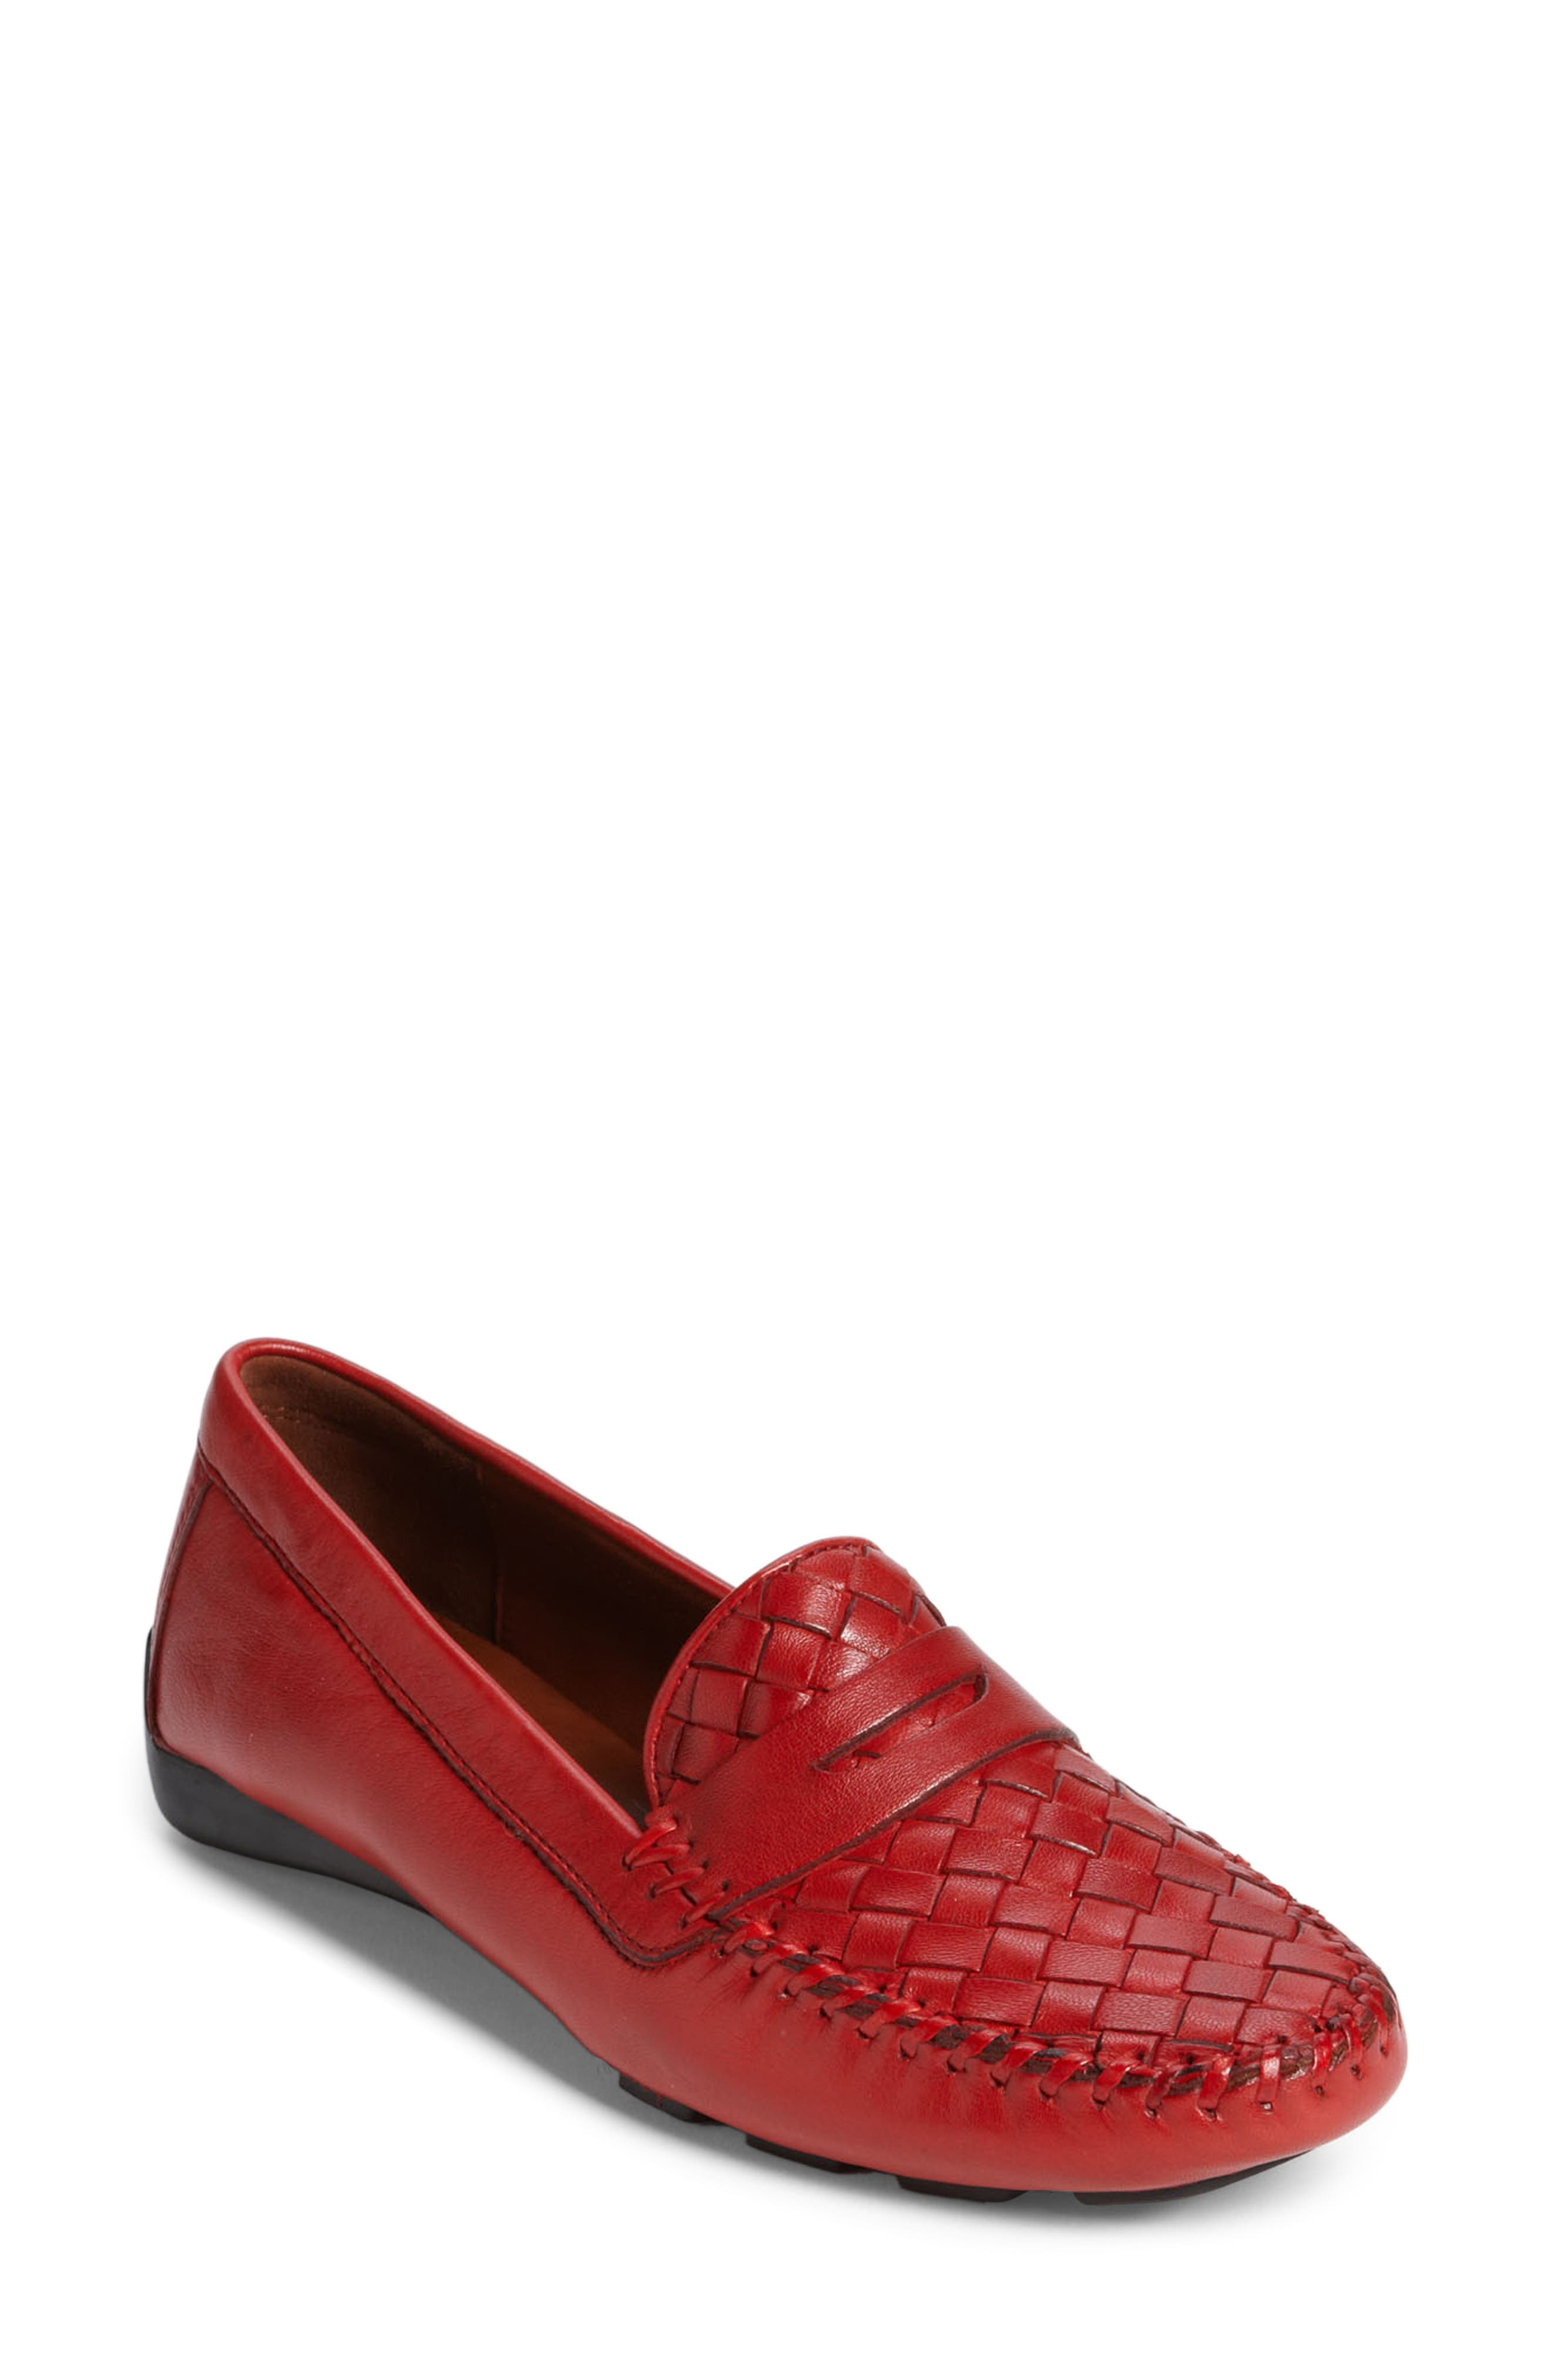 595ee31622e Women s Loafers Shoes